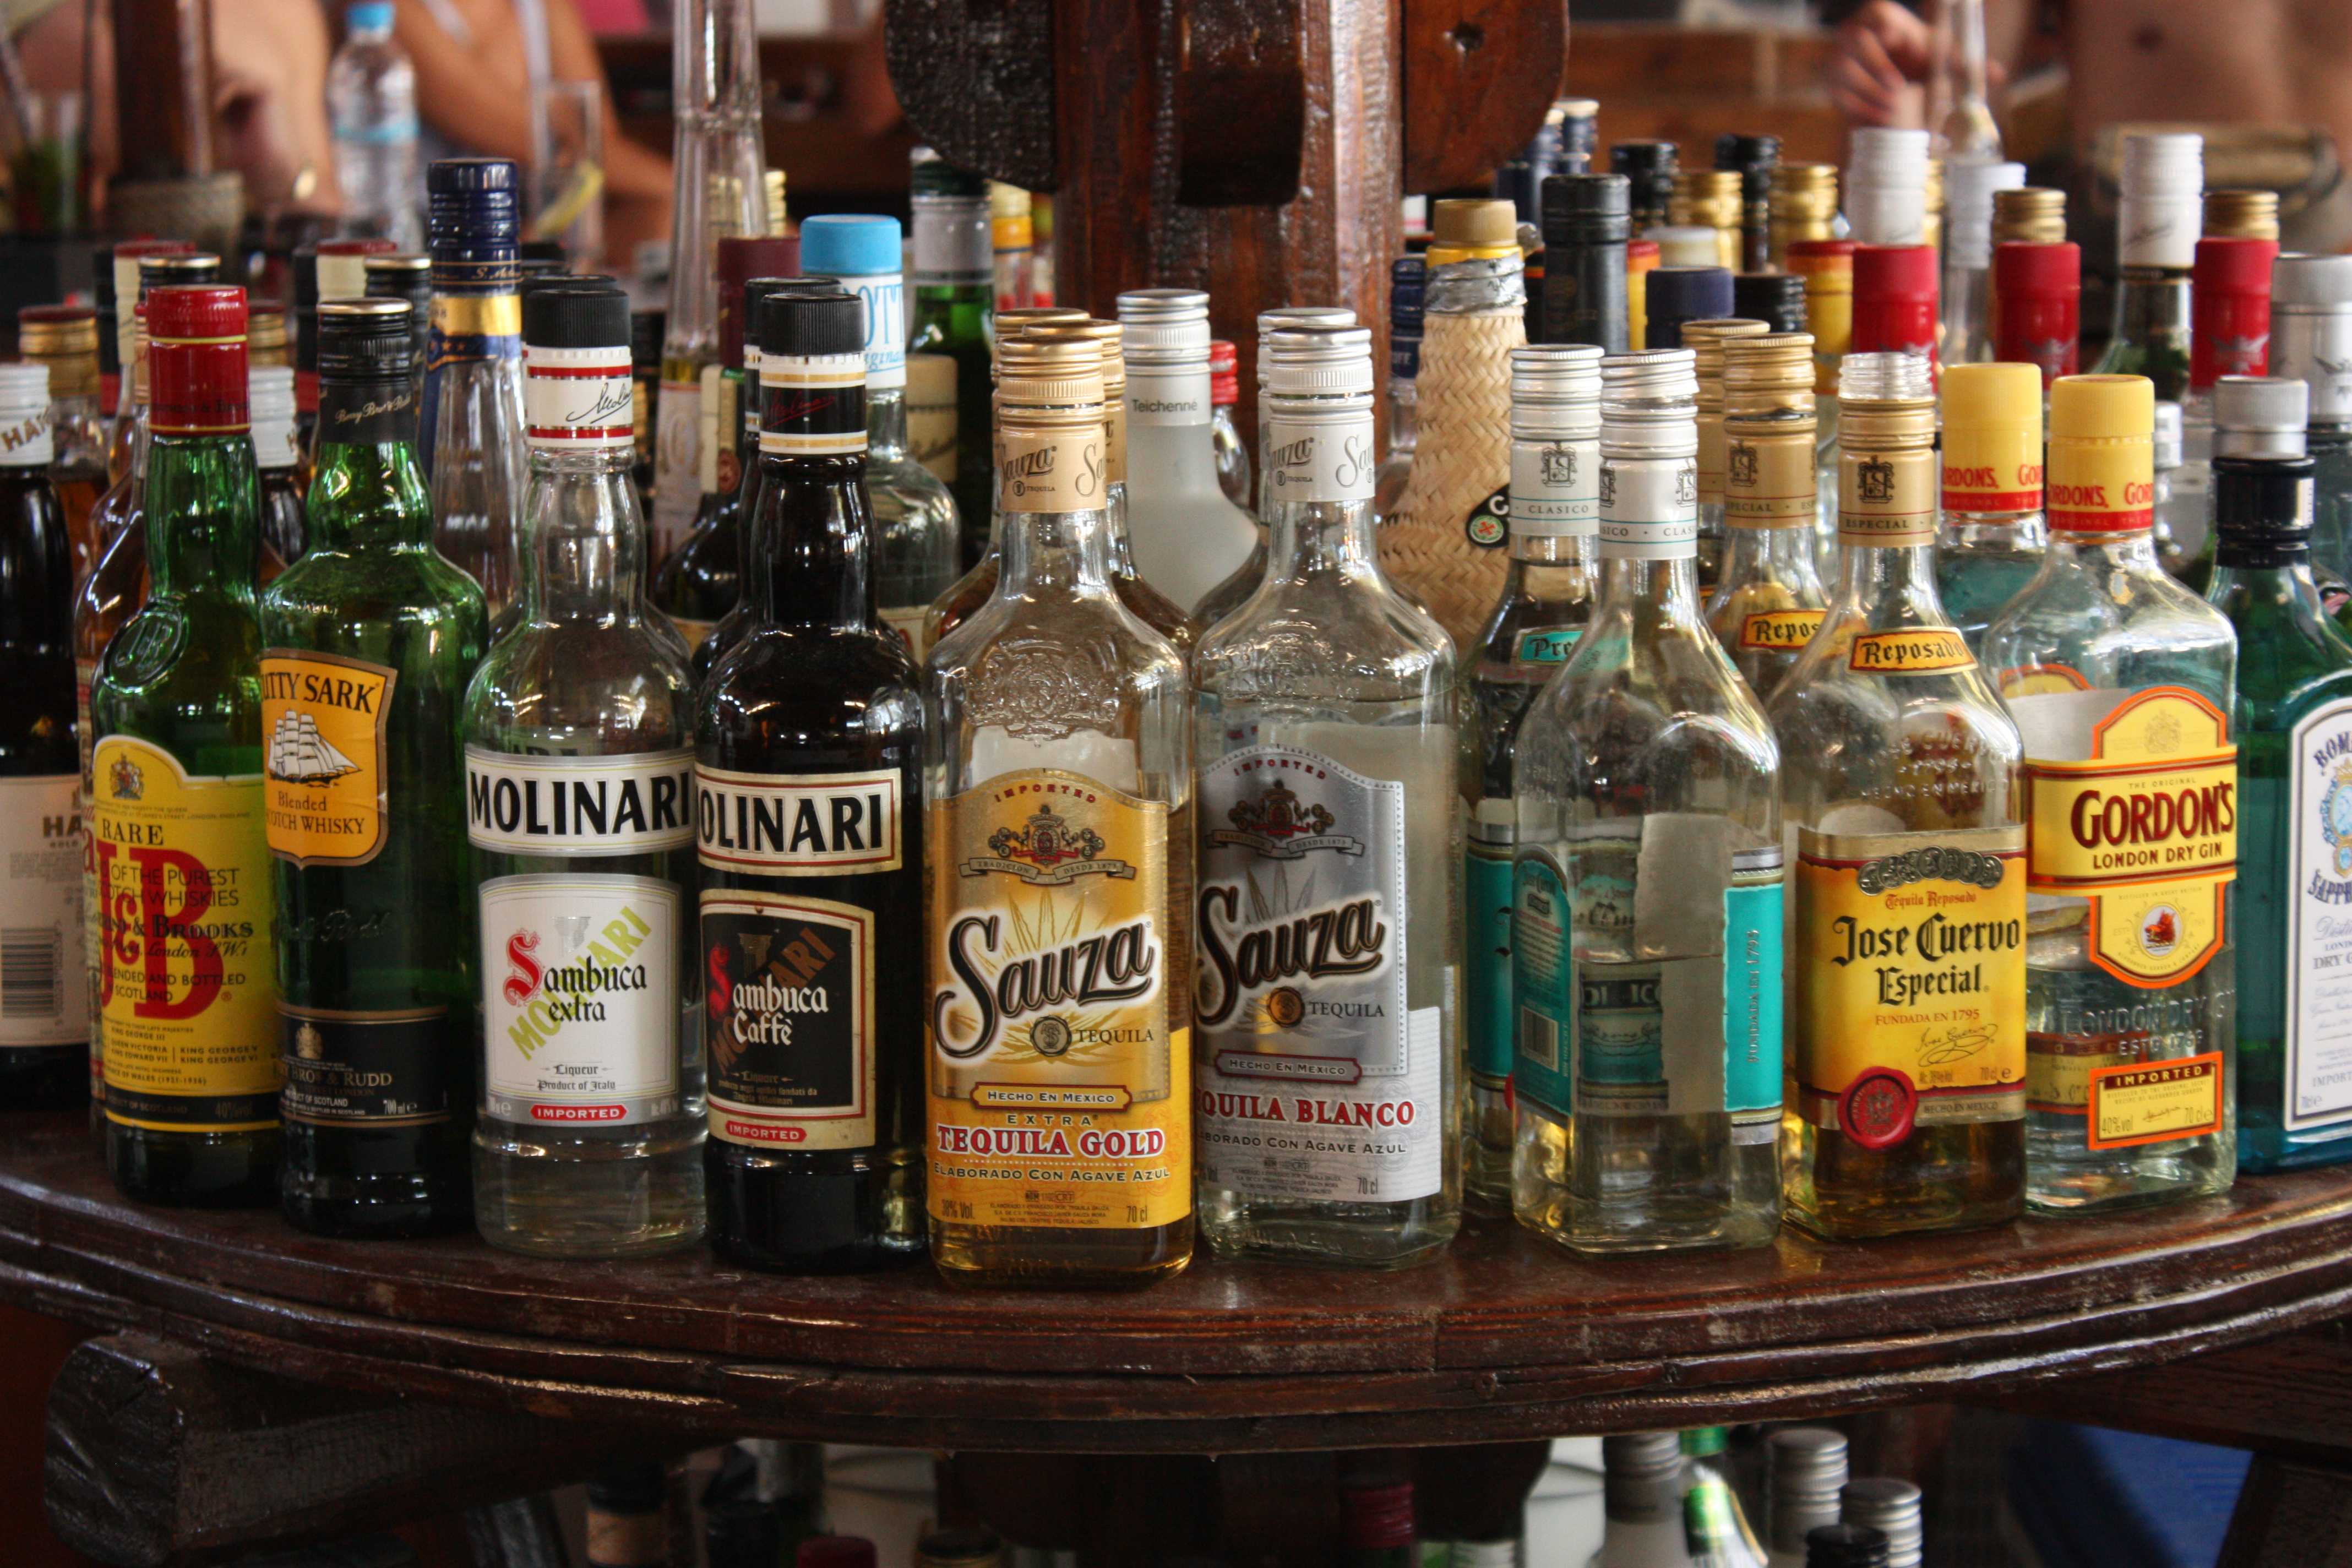 How Much Alcohol Can You Drink And Drive Legally